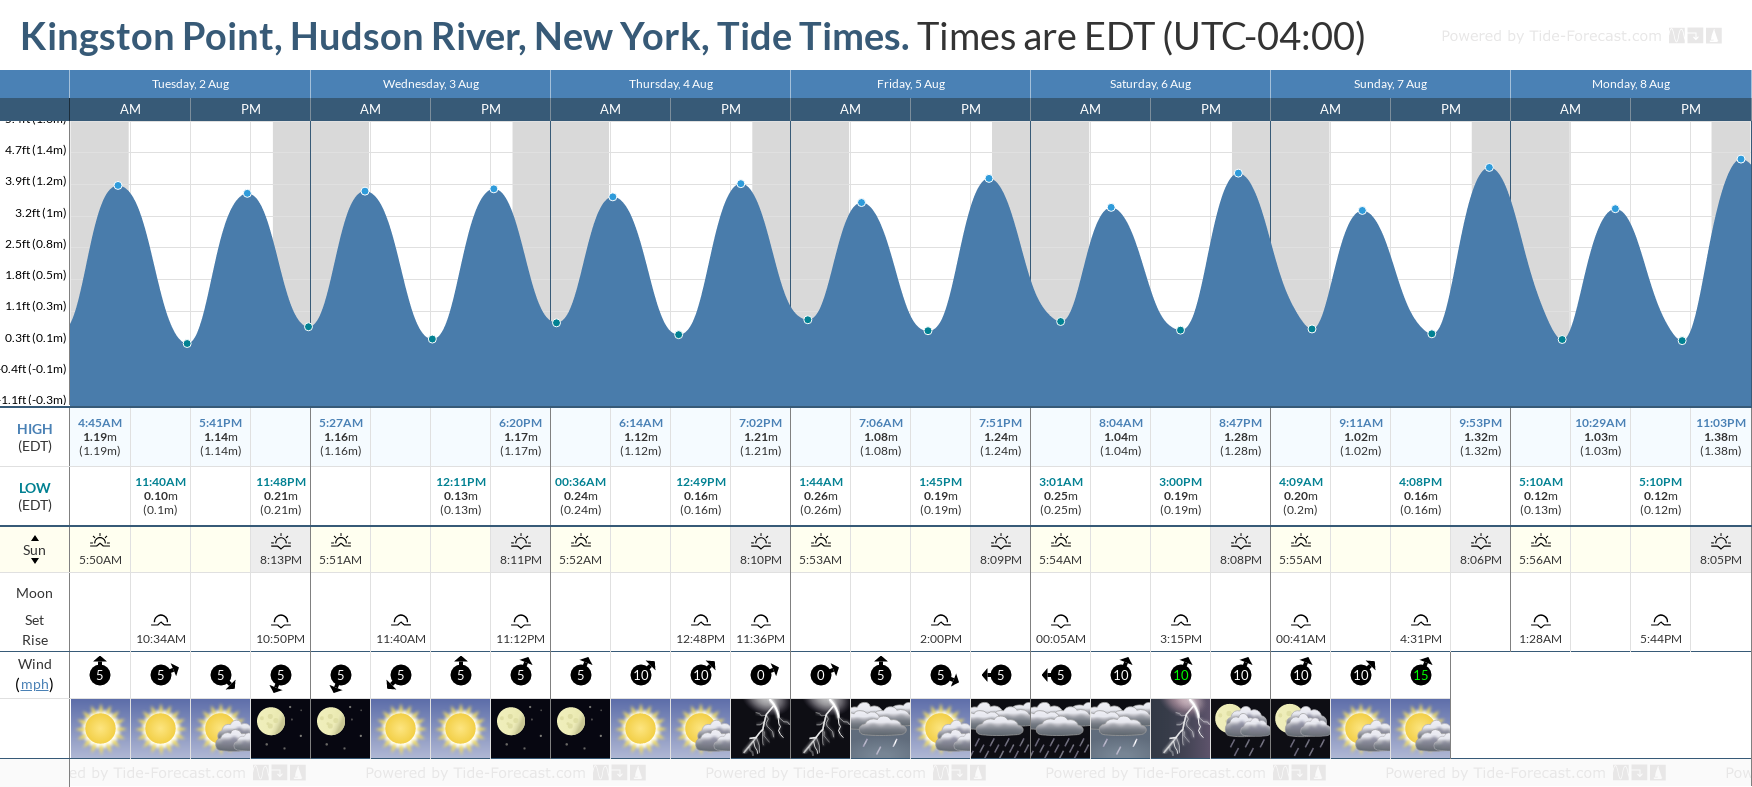 Kingston Point, Hudson River, New York Tide Chart including high and low tide tide times for the next 7 days